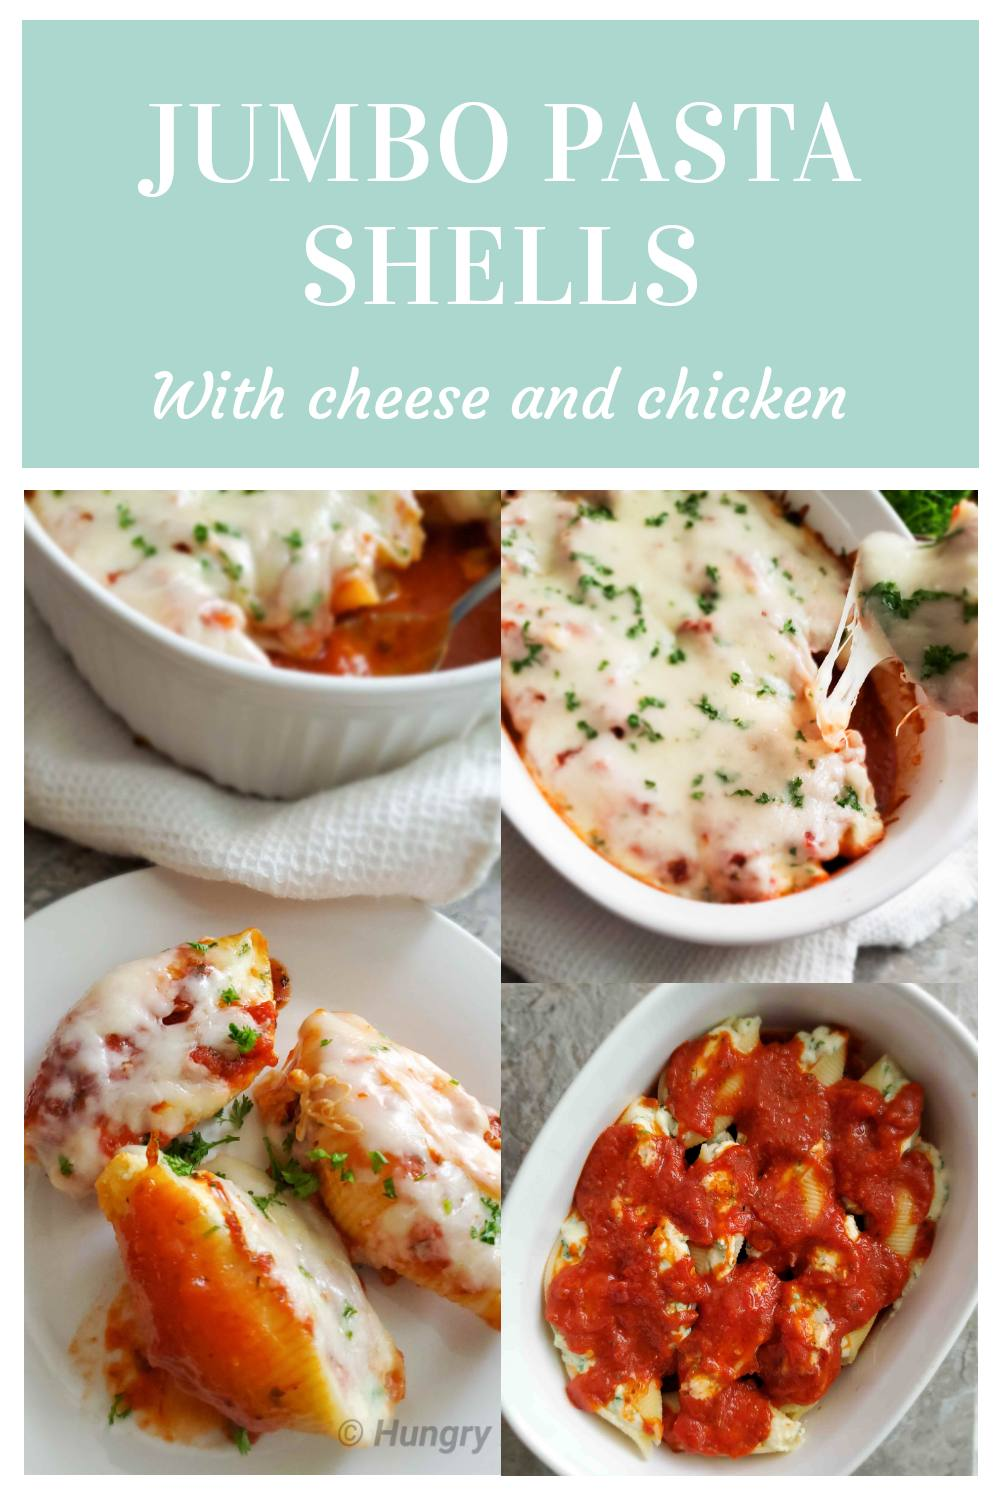 These delicious Jumbo shells are filled with cheese, chicken, and herbs and baked with marinara and more cheese on the top. Cheesy heaven for cheese lovers.